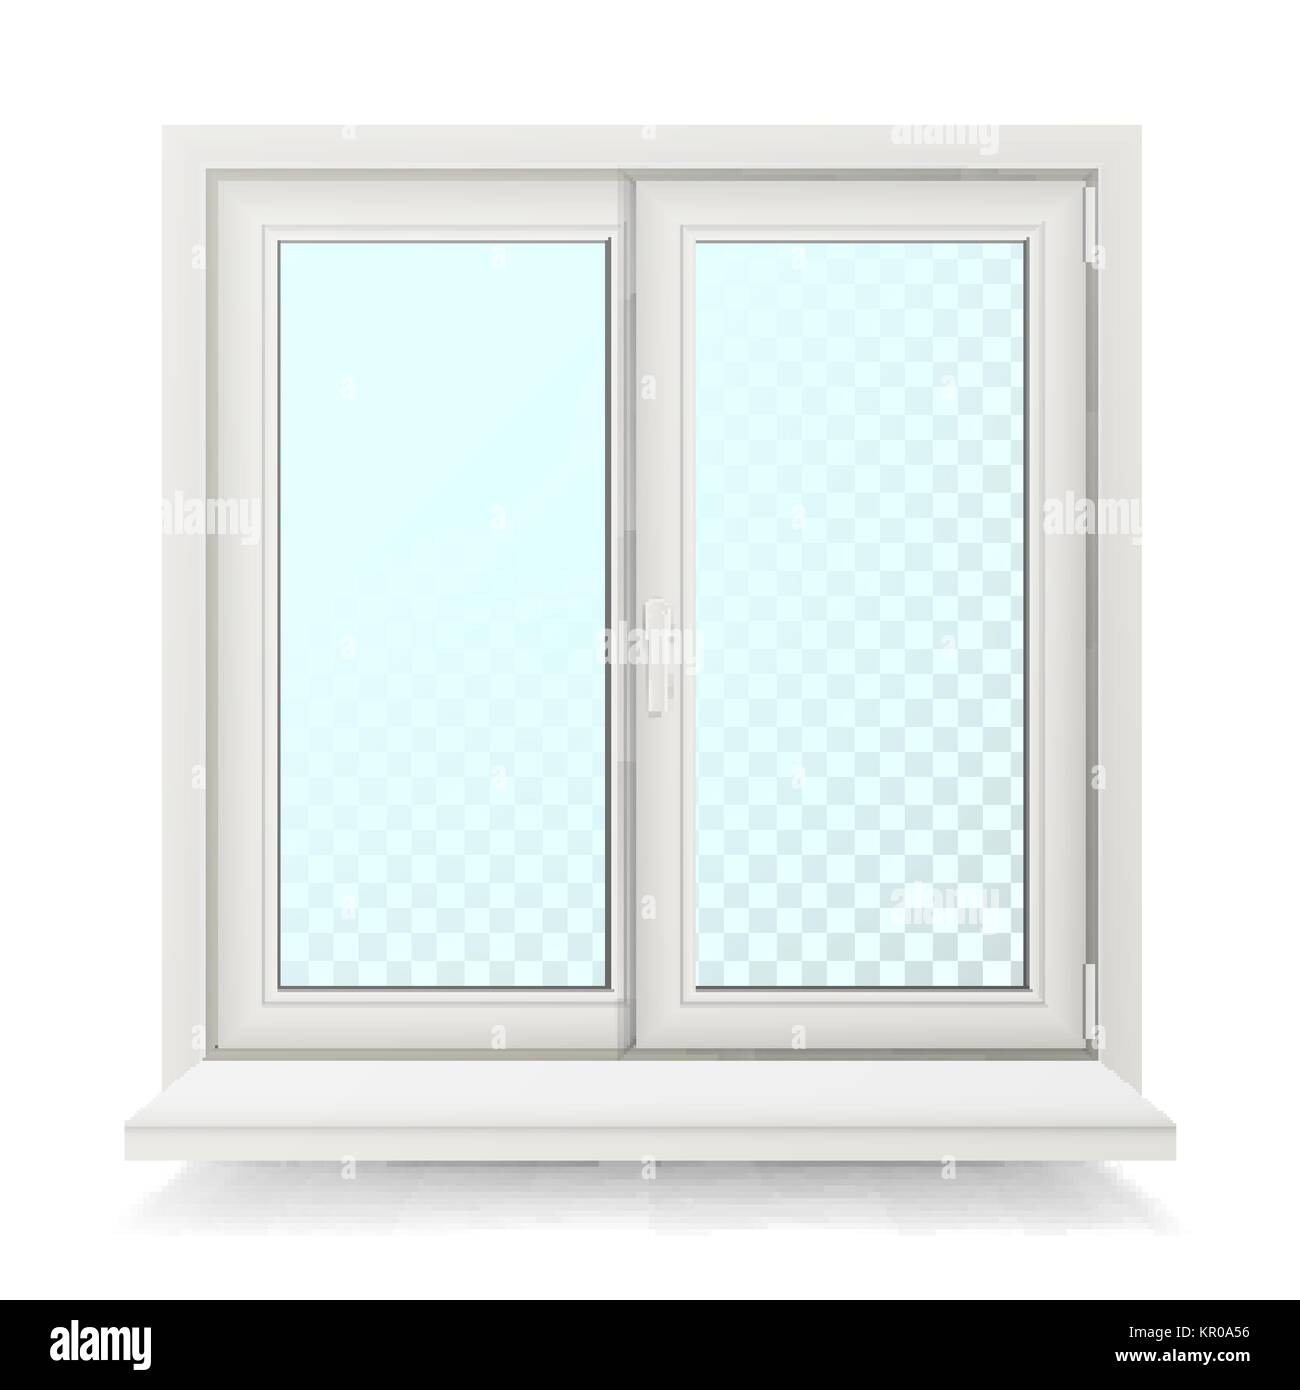 Plastic Window Vector. Home Window Design Concept. Isolated On White Background Illustration - Stock Vector